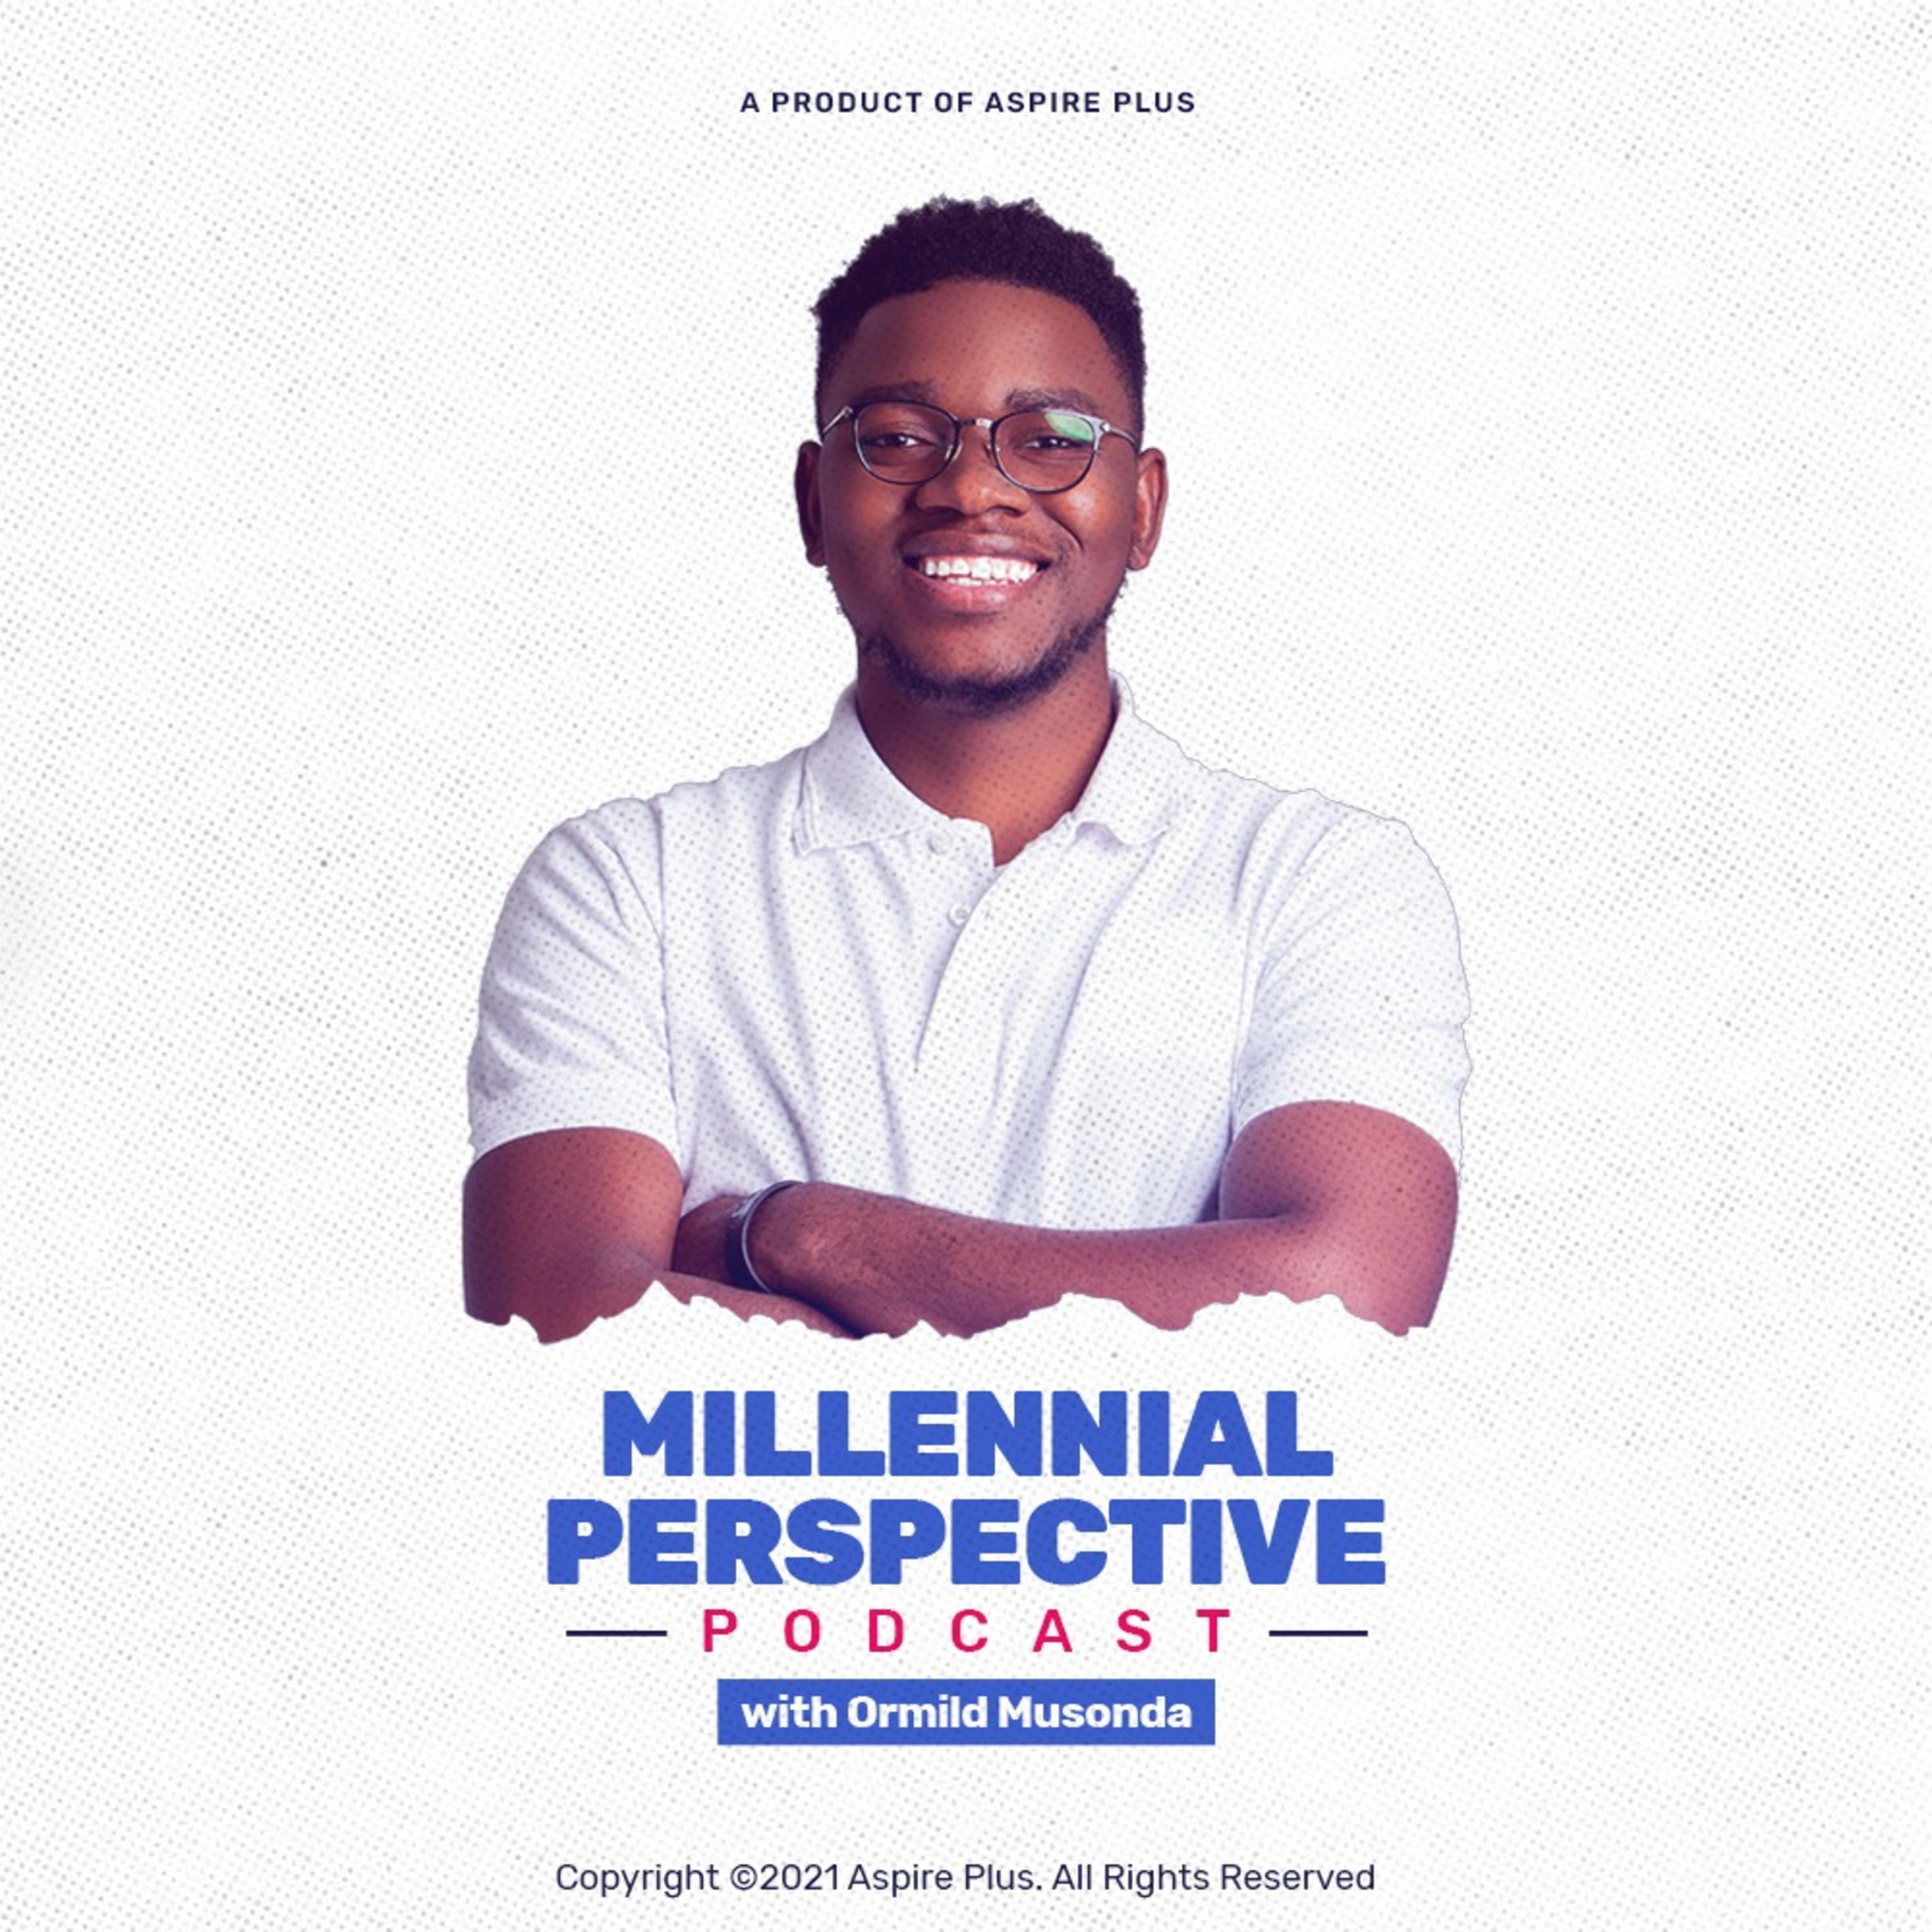 Millennial Perspective podcast